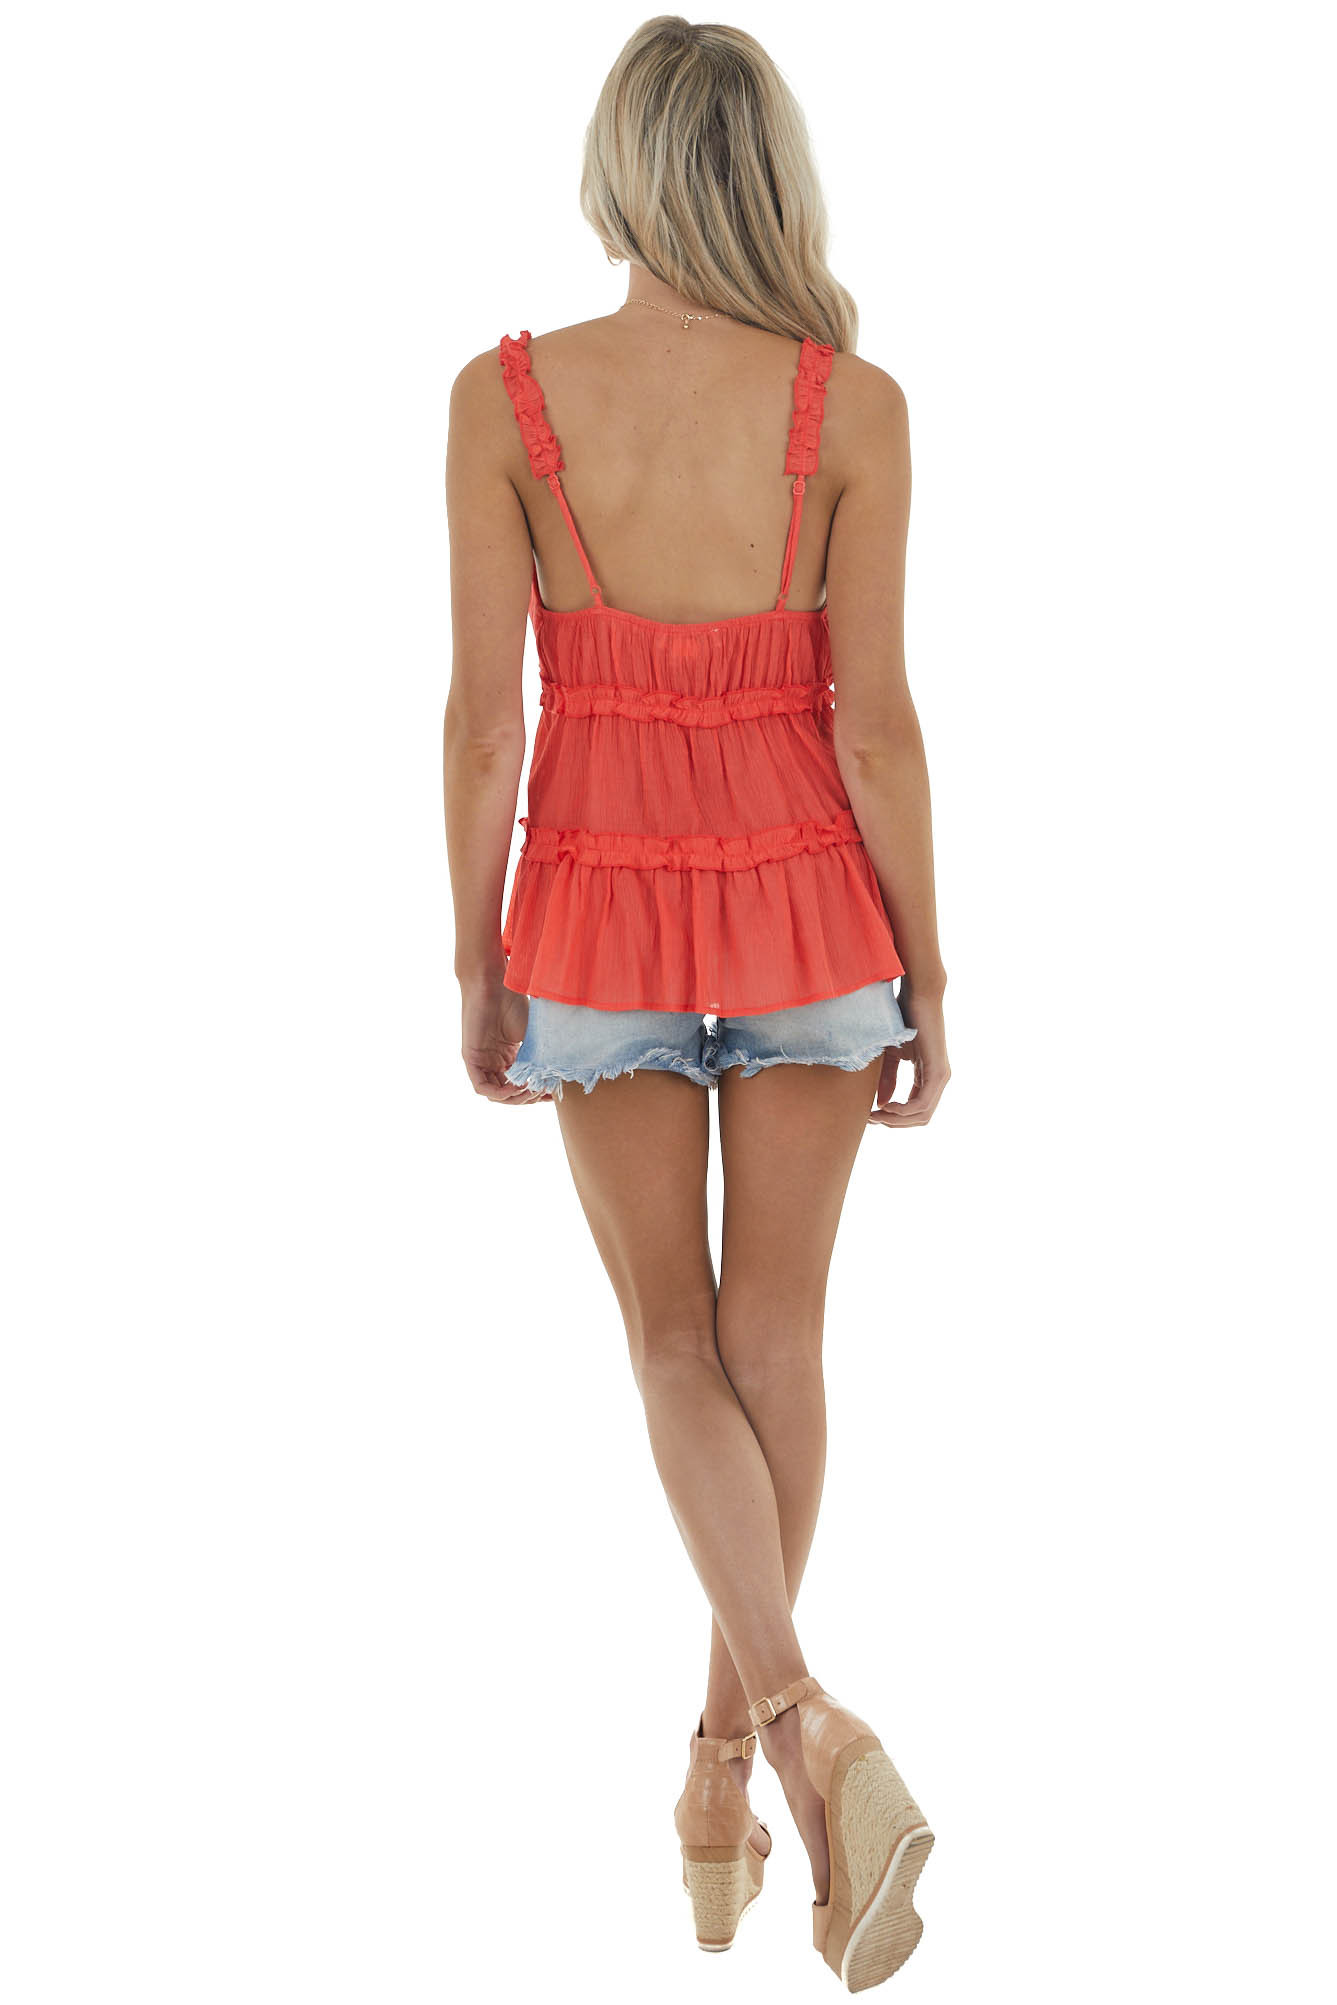 Coral Babydoll Sleeveless Blouse with Frill Details